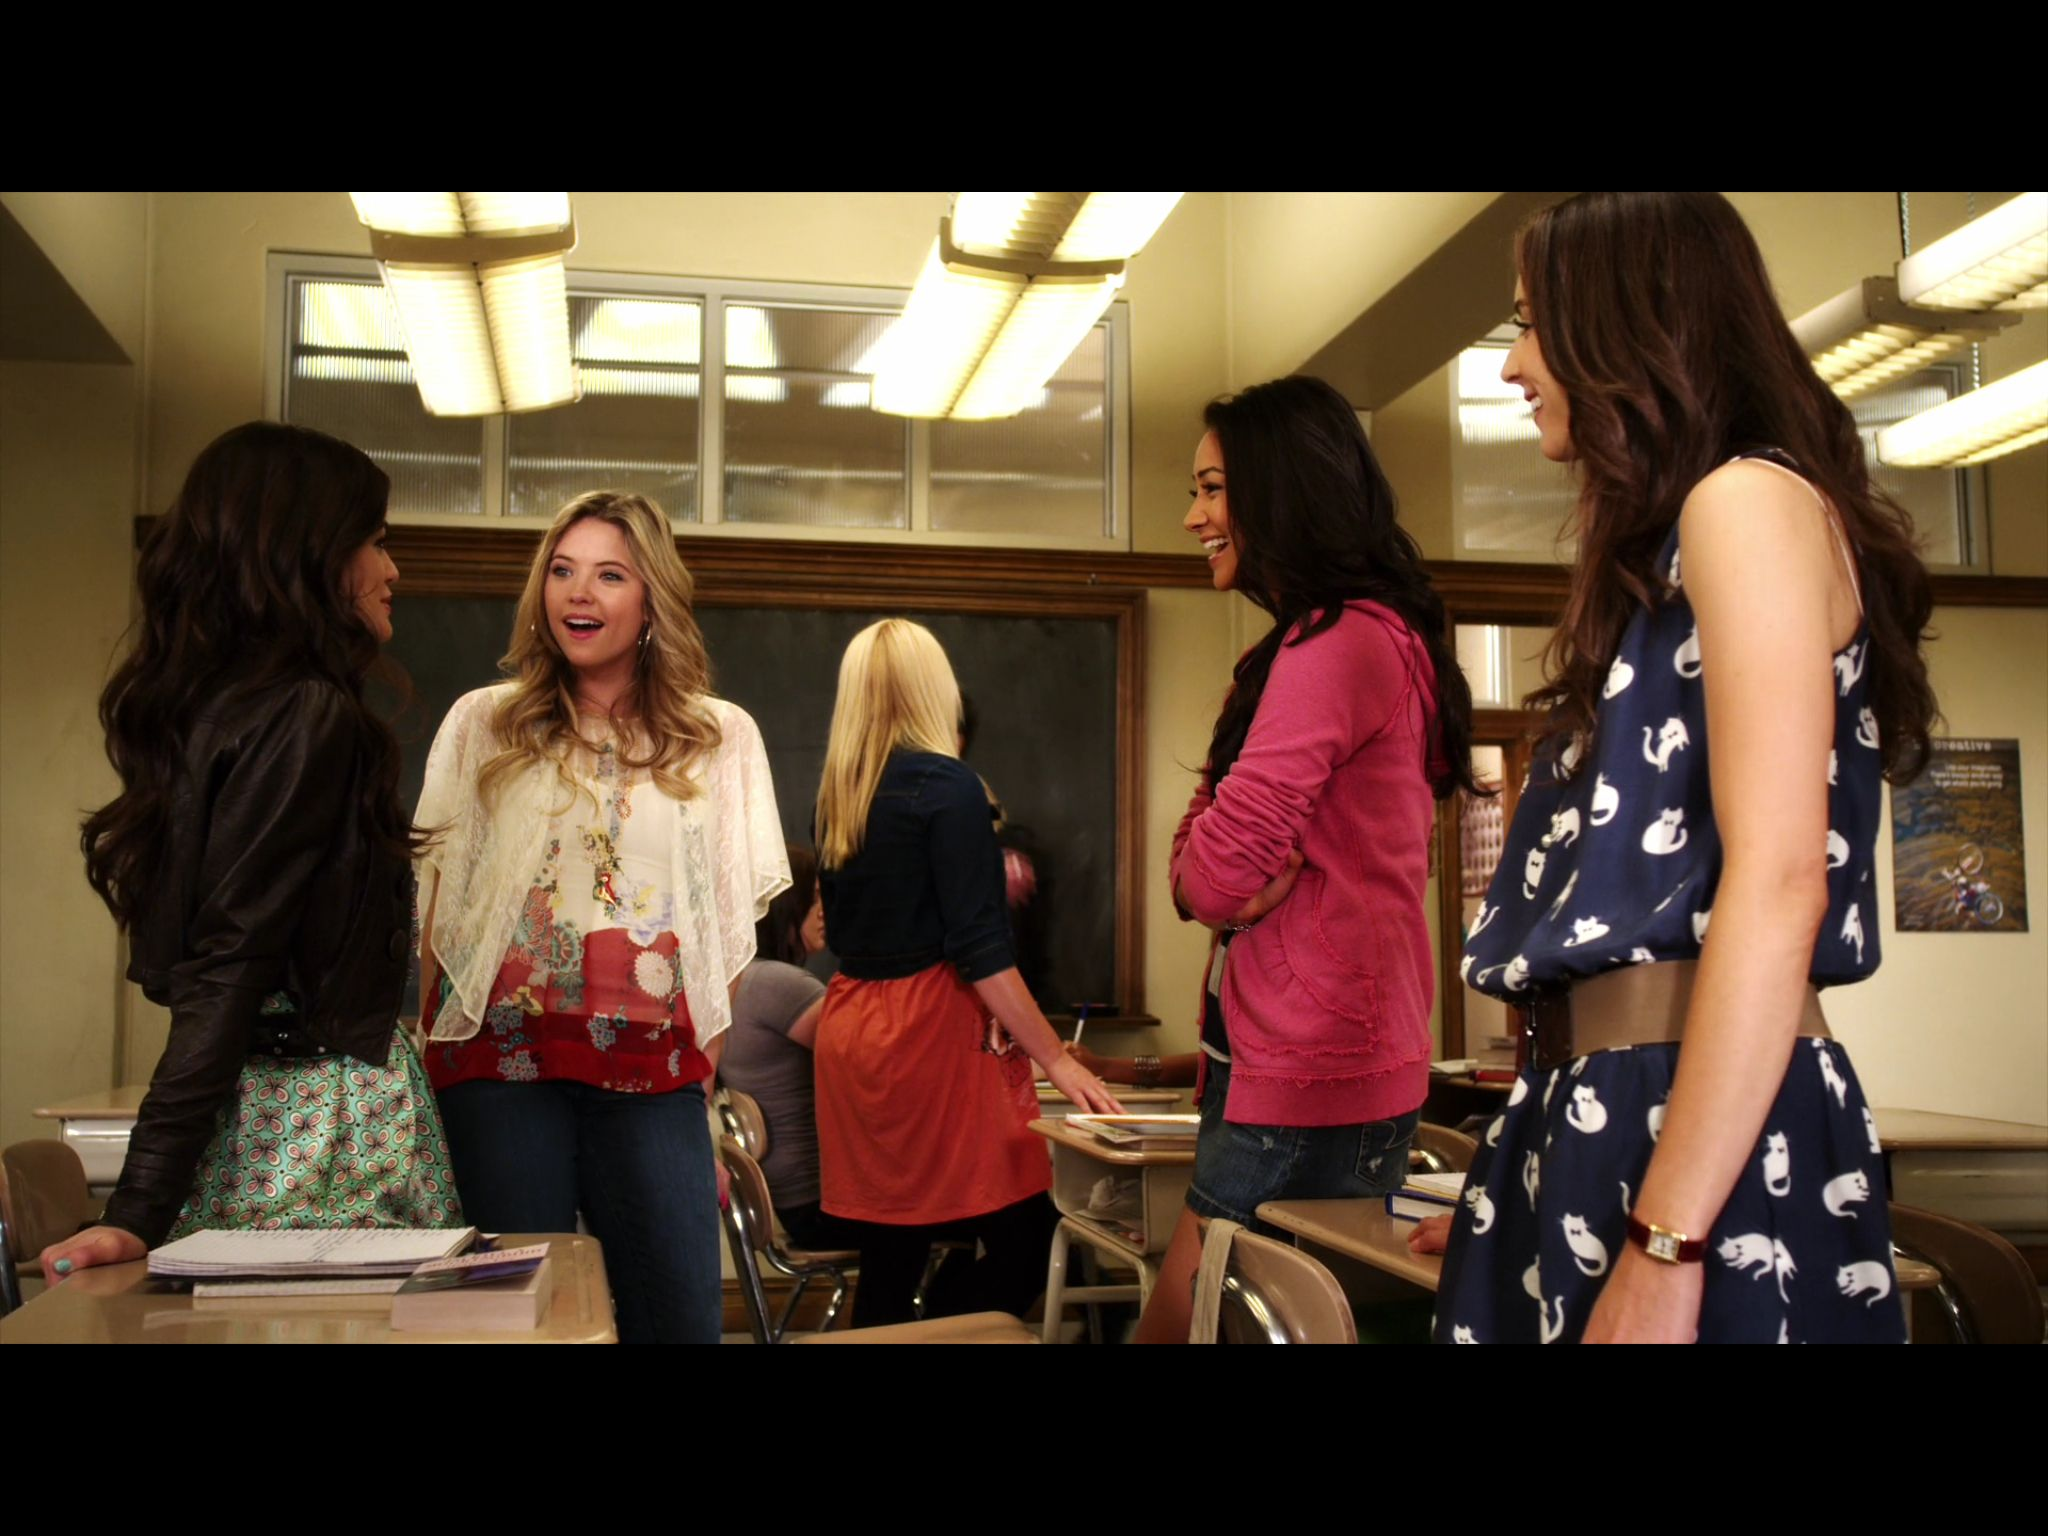 Related spencer hastings living room hanna marin kitchen - Find This Pin And More On Hanna Marin Season 1